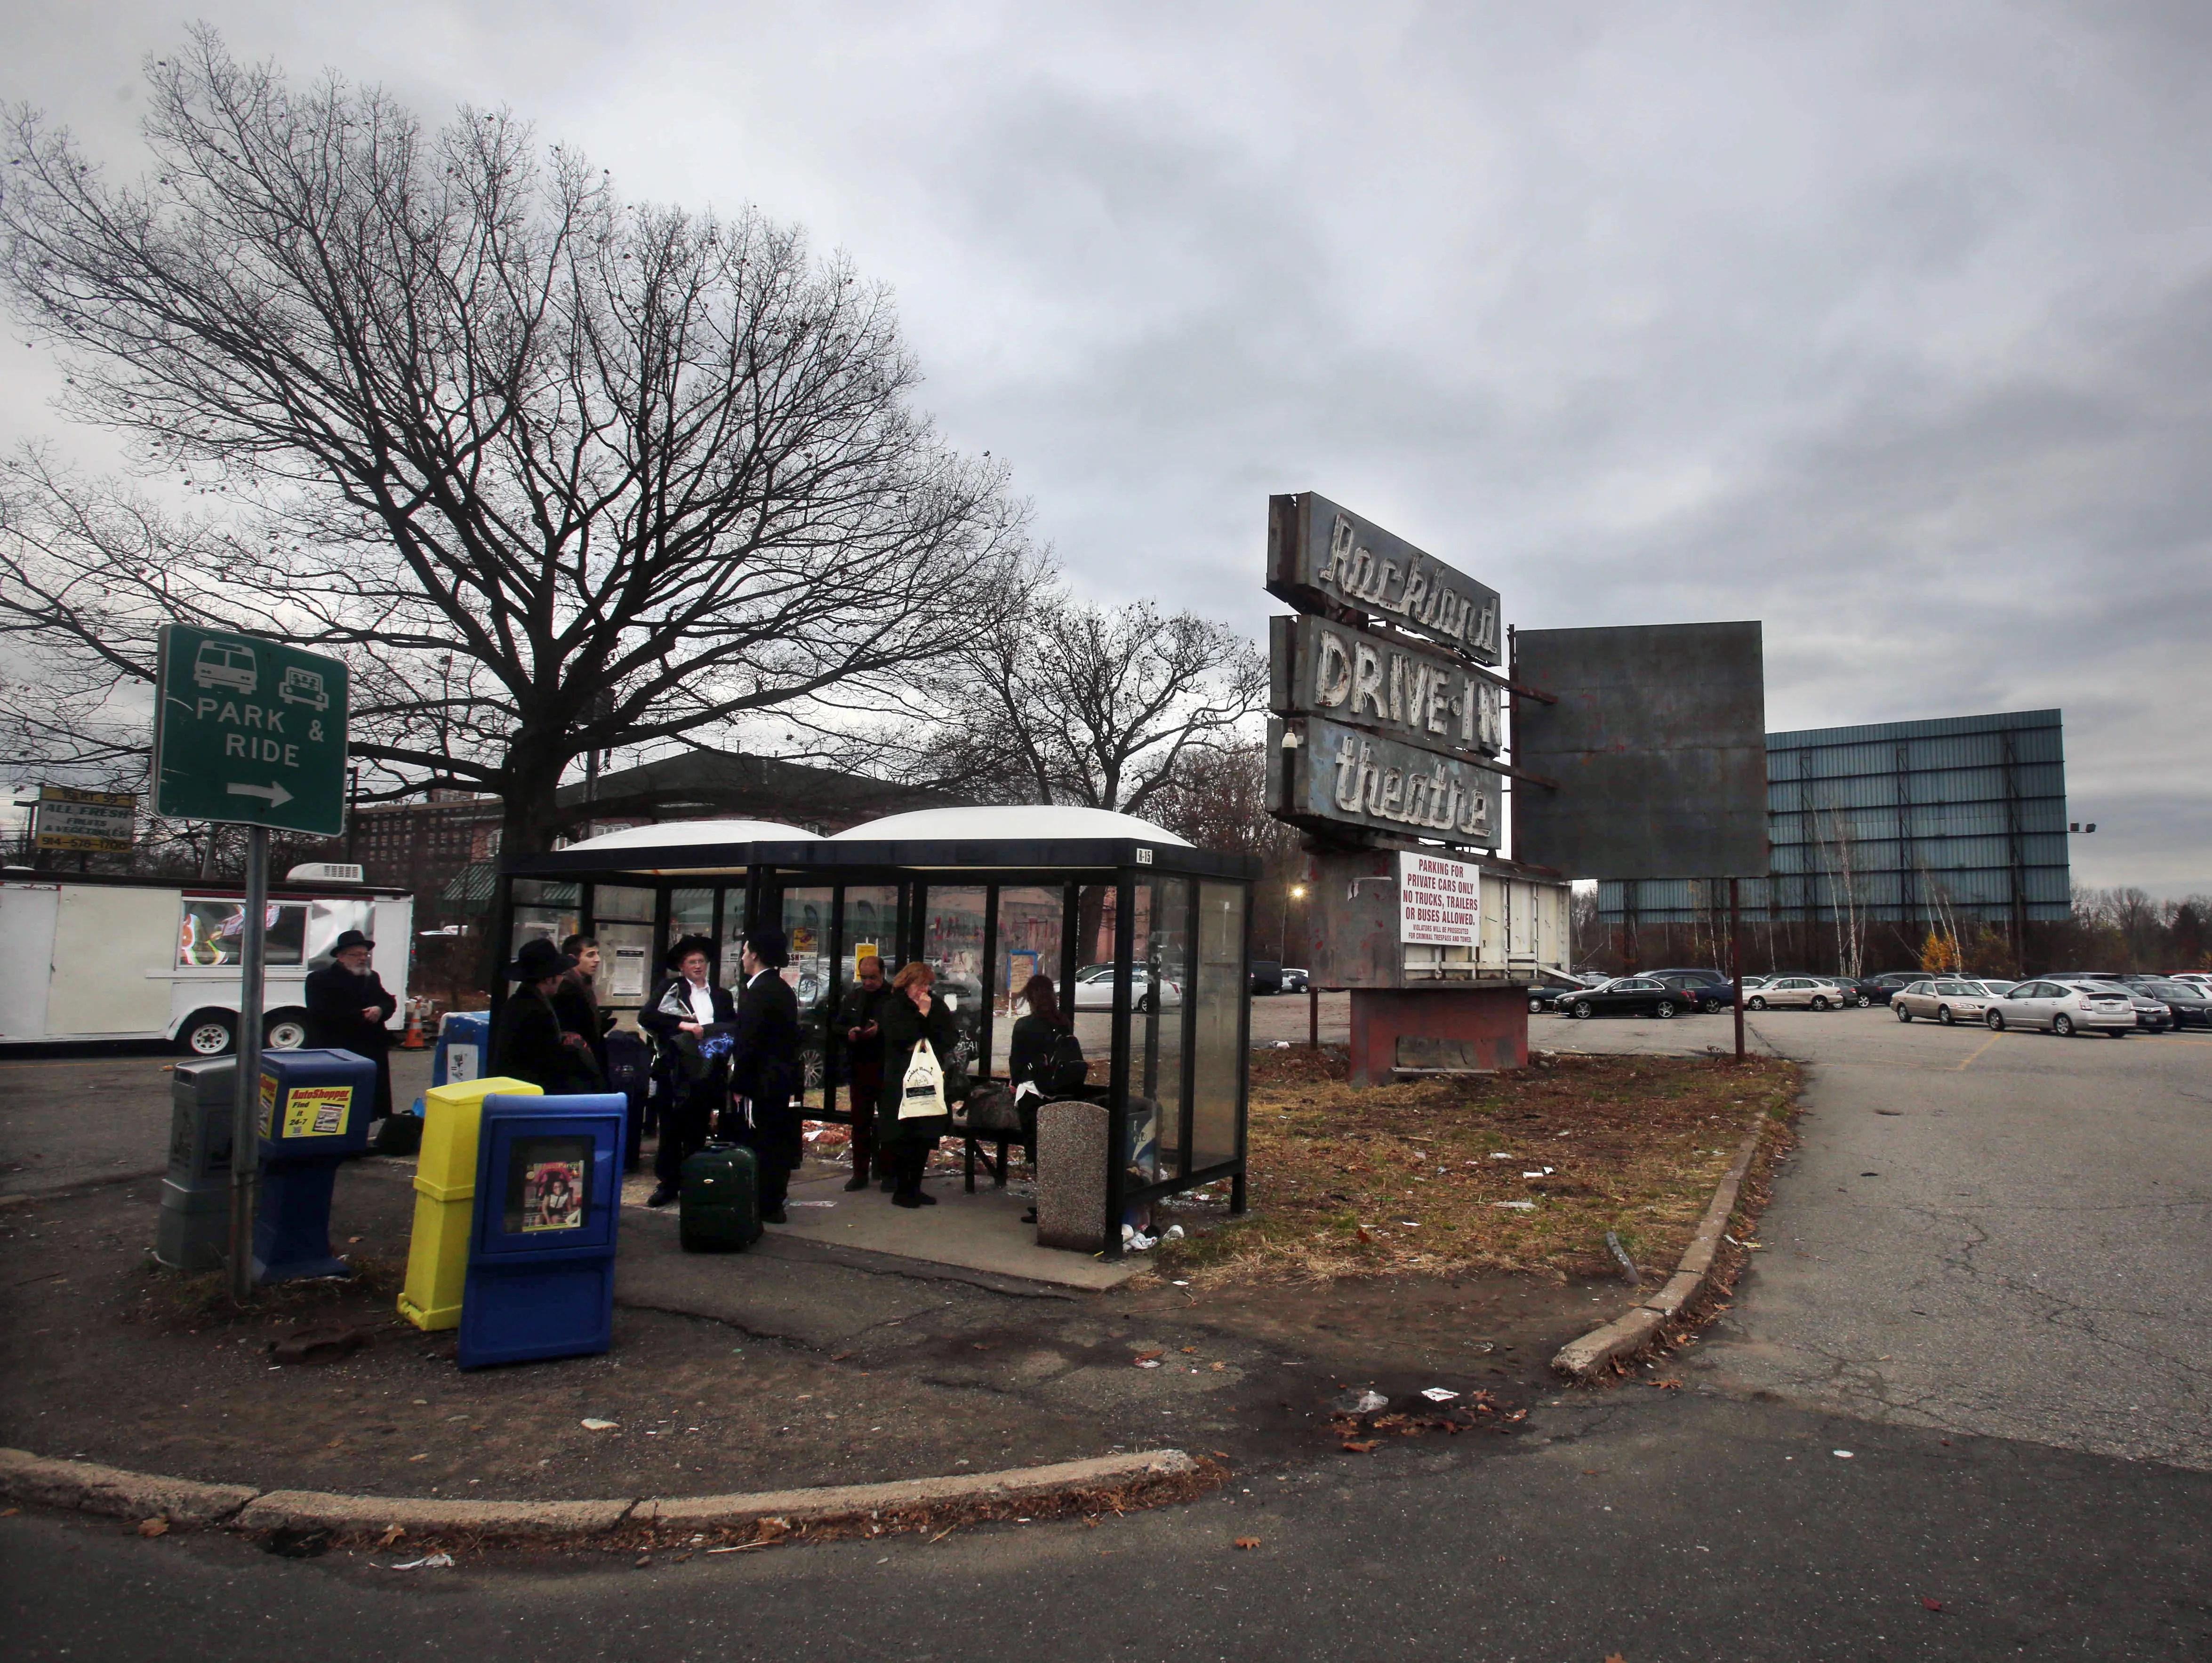 medium resolution of a bus stop in front of the old rockland drive in theater